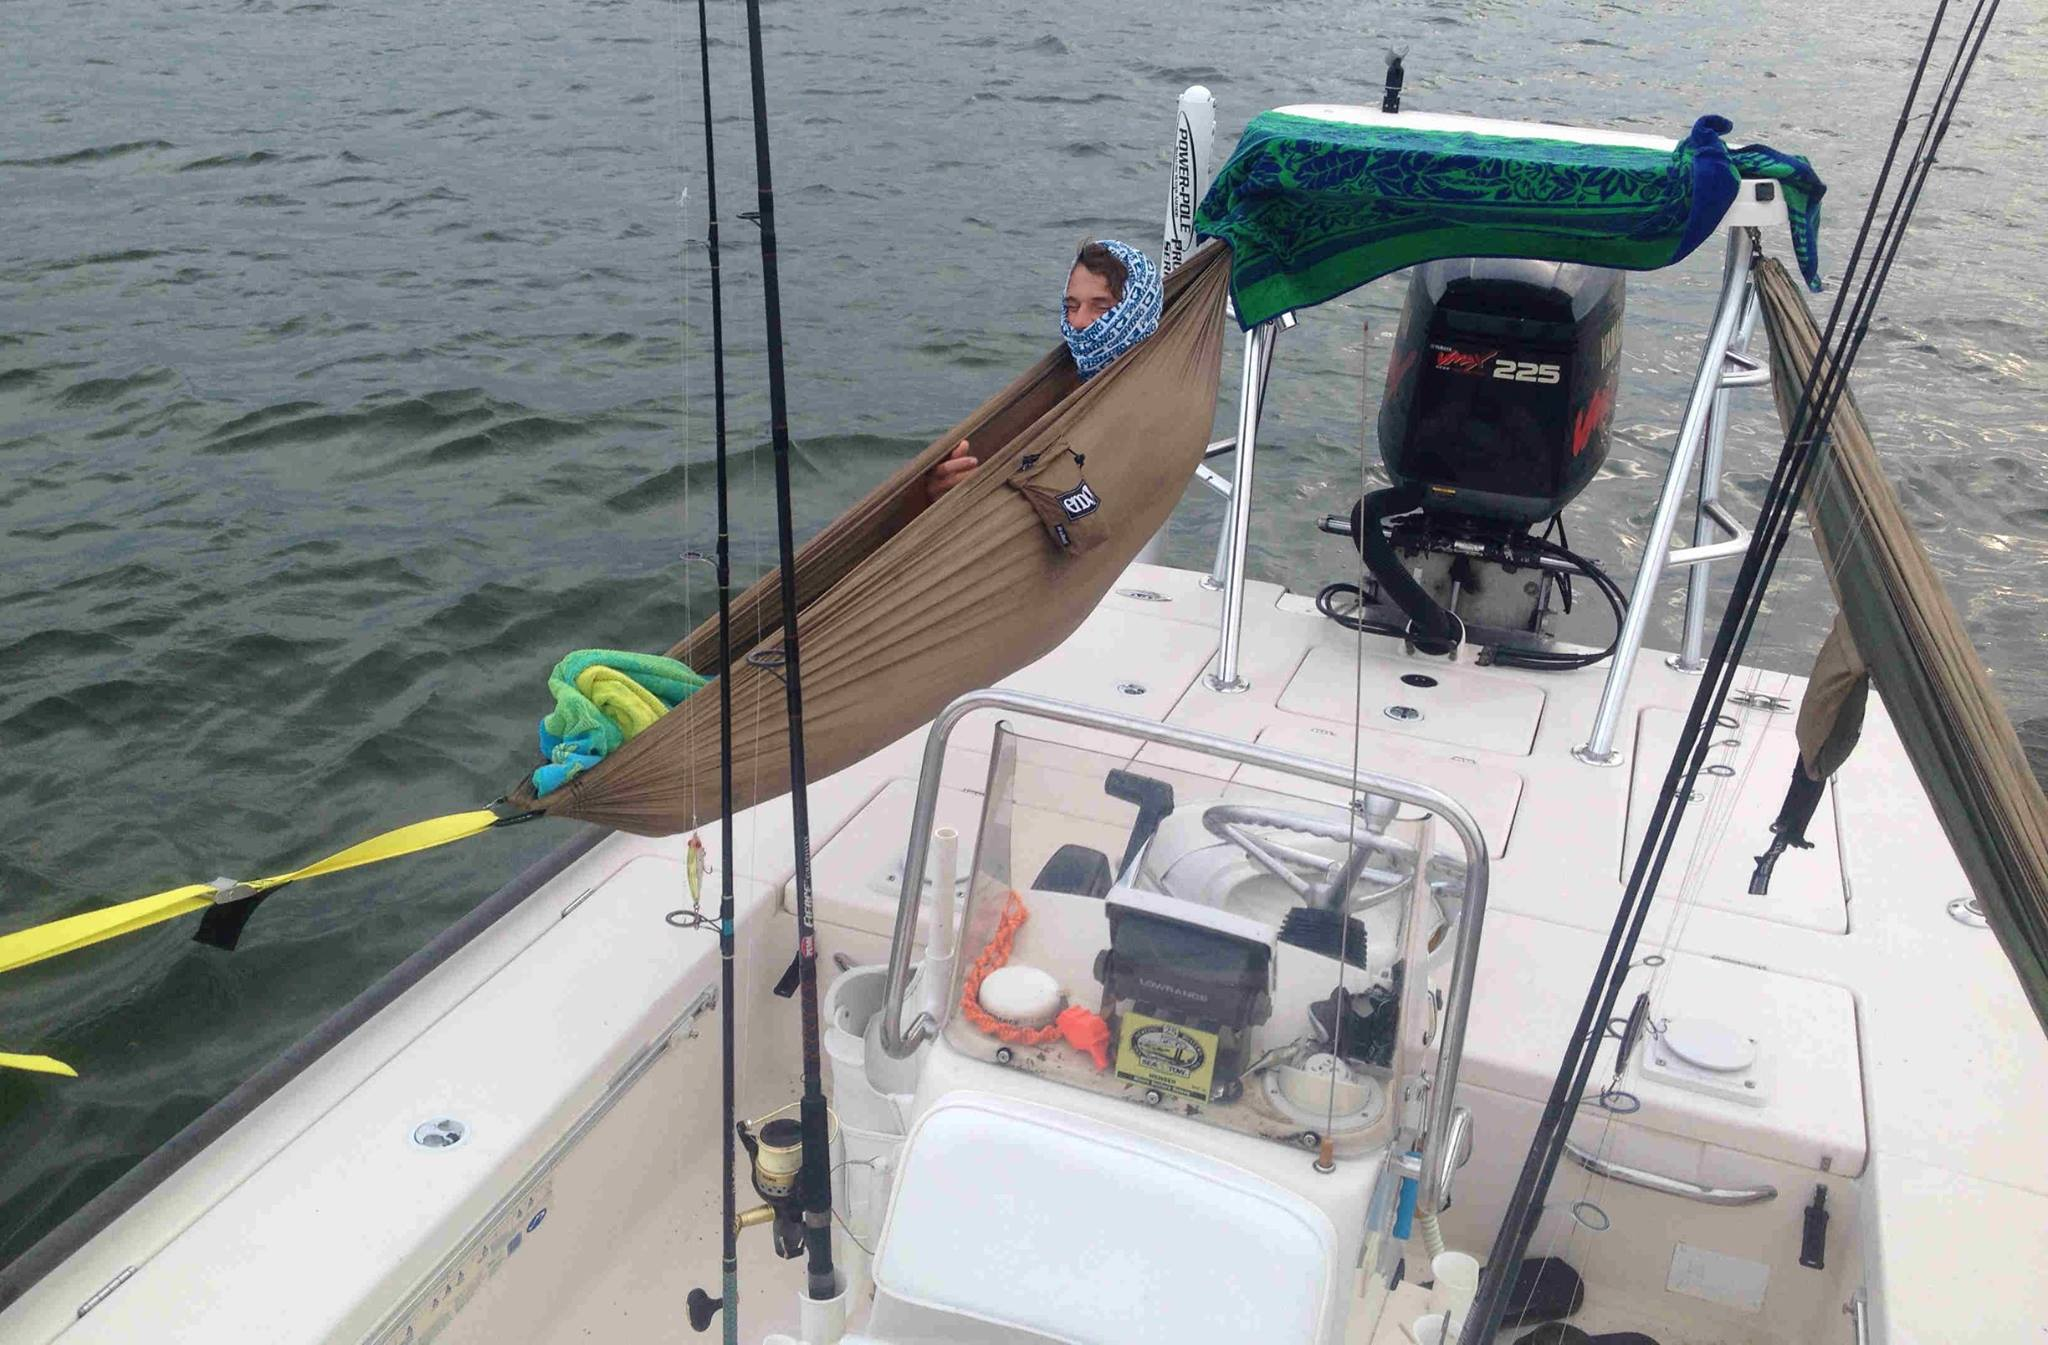 Diy skiff hammock for camping and fishing overnight trips for Fish camping boat